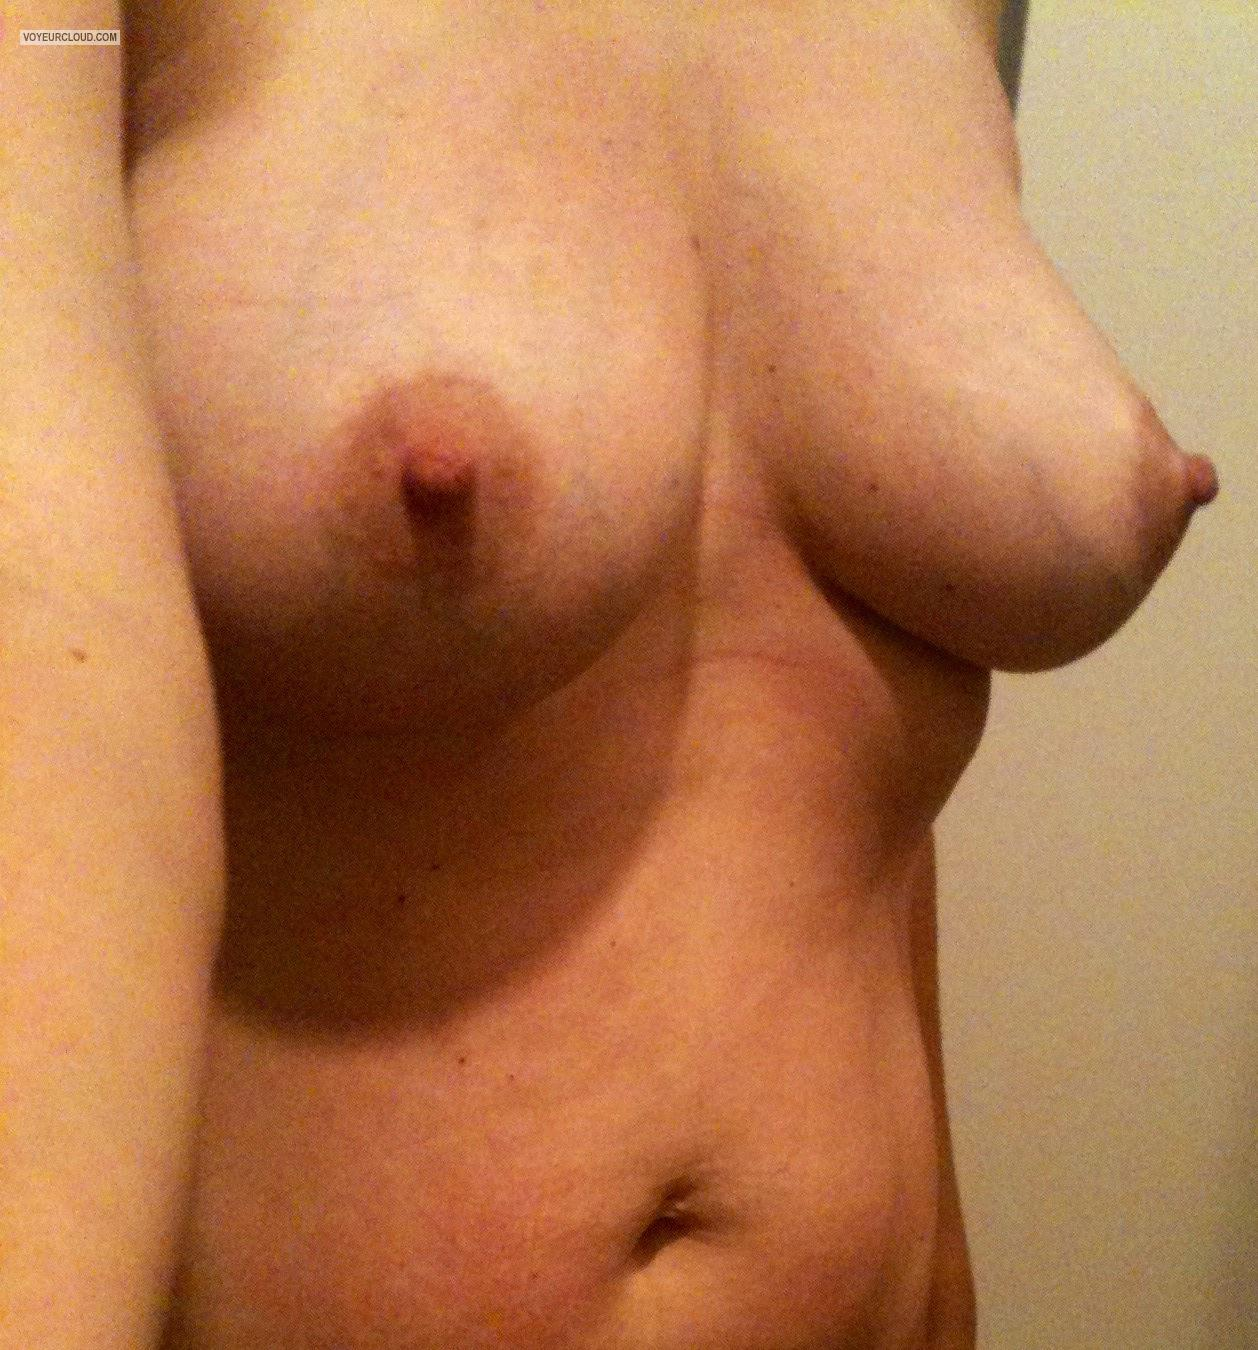 Tit Flash: Medium Tits By IPhone - Nati from United States